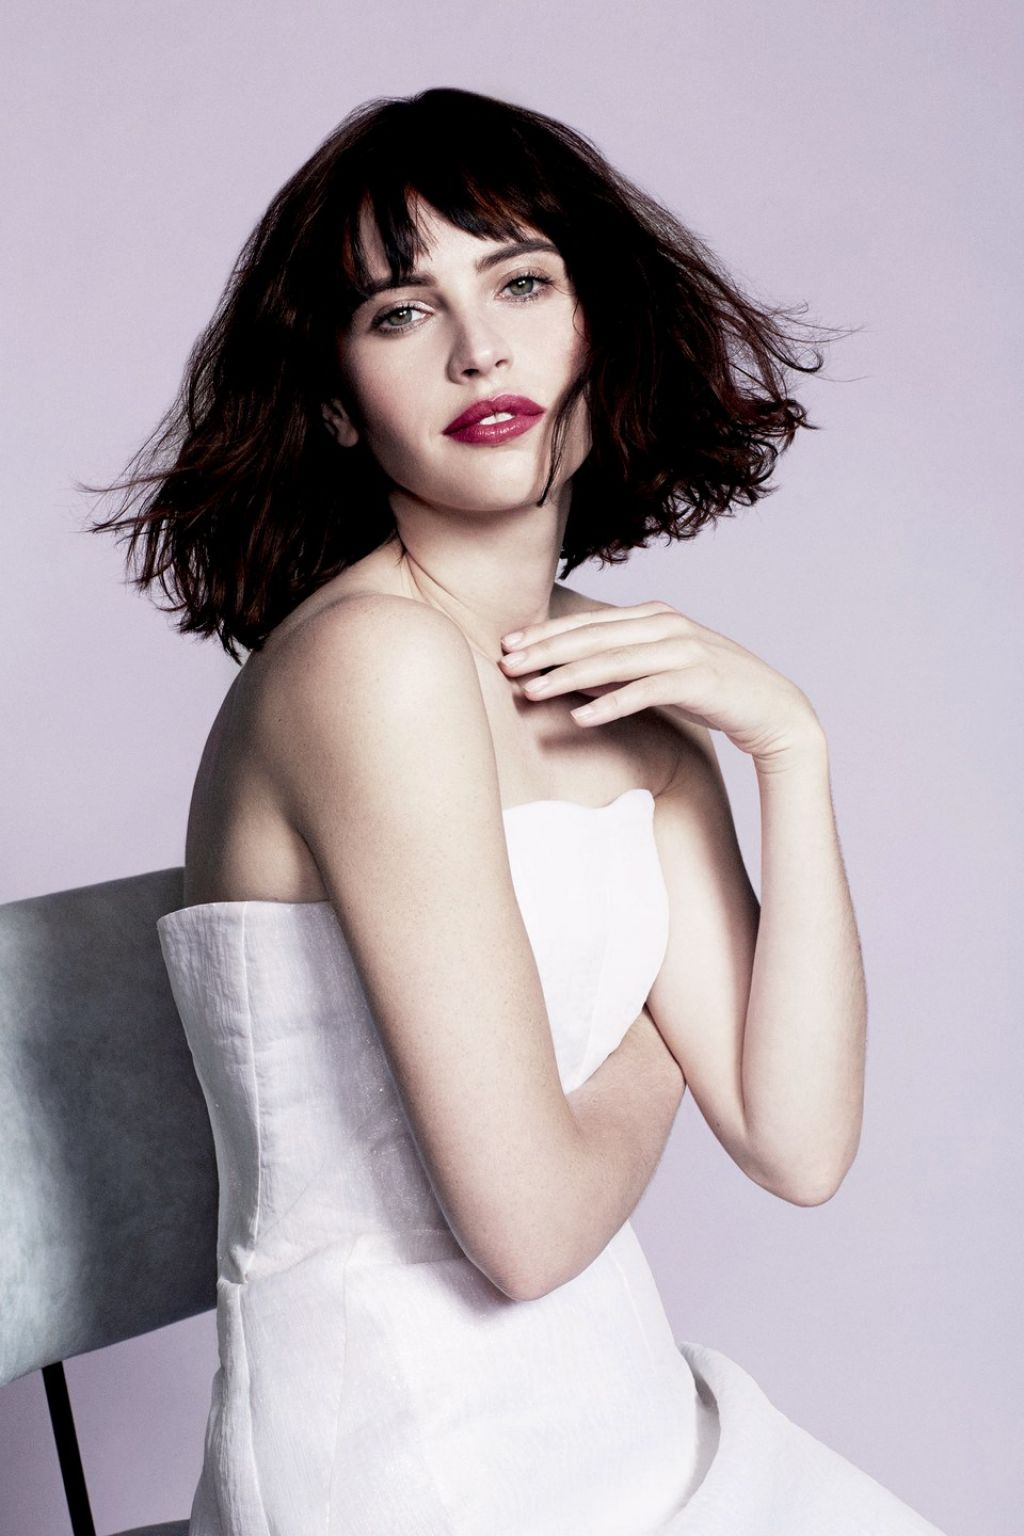 49 Hot Pictures Of Felicity Jones Are Just Too Yum For Her Fans Best Of Comic Books